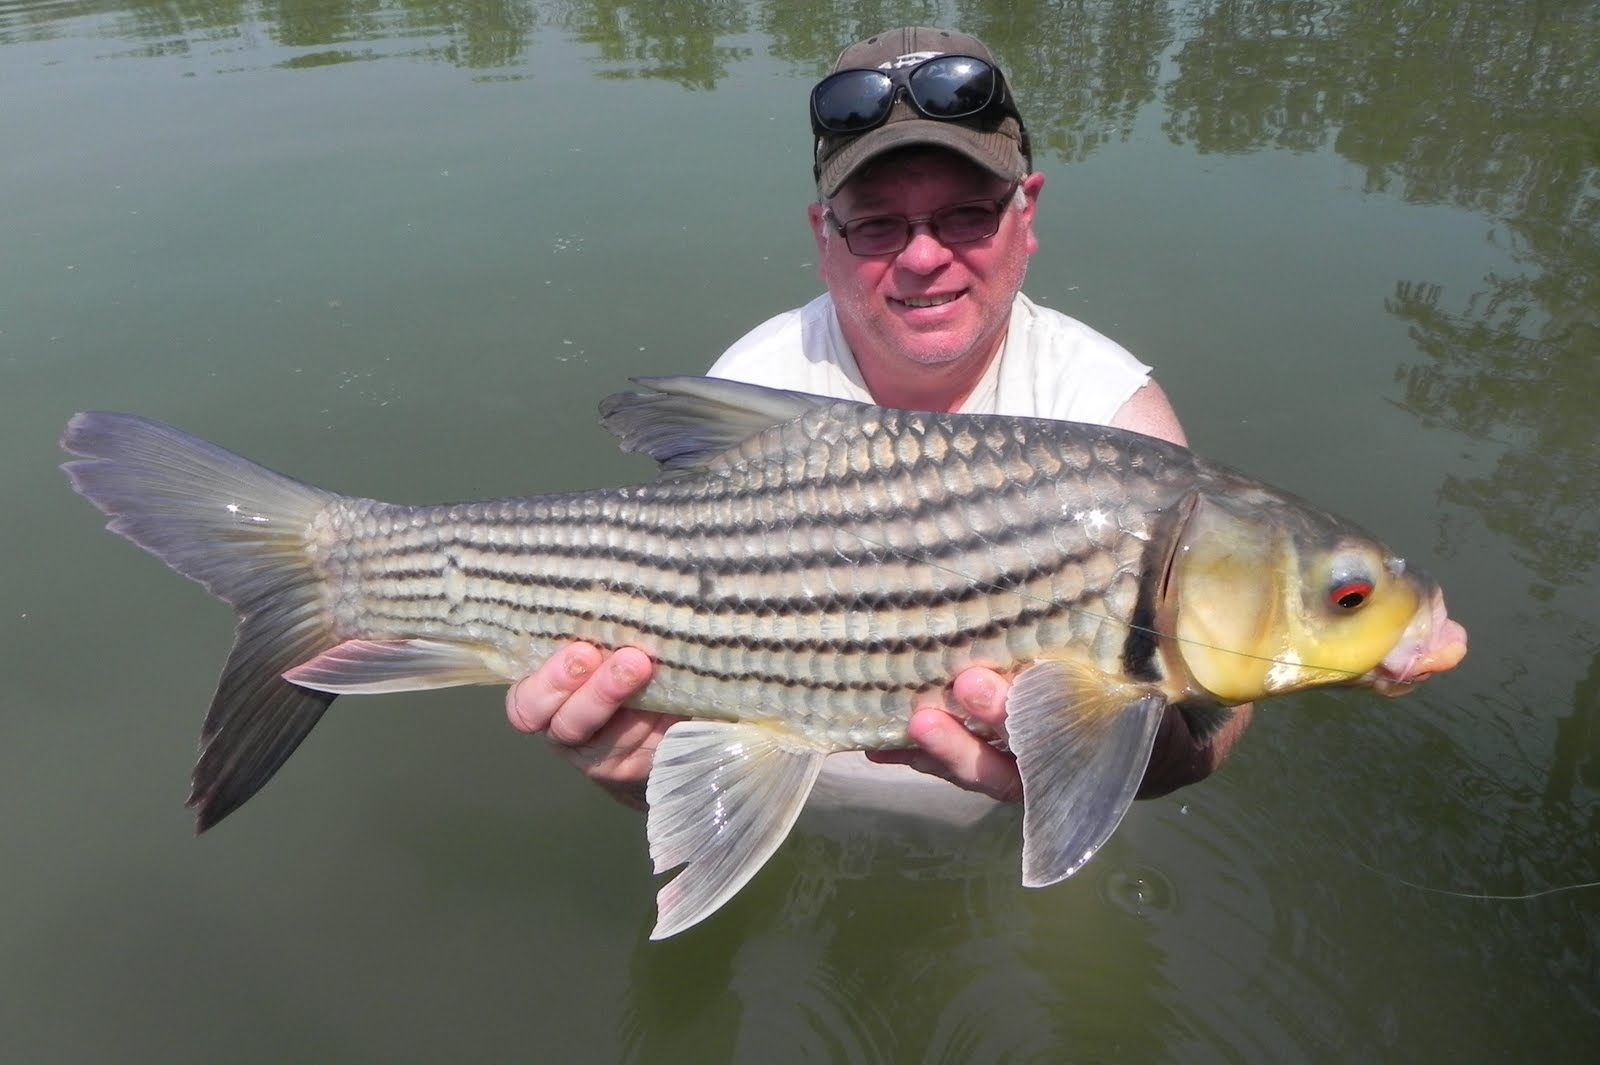 The fishing news world 39 s strongest freshwater fish for Pond fish species